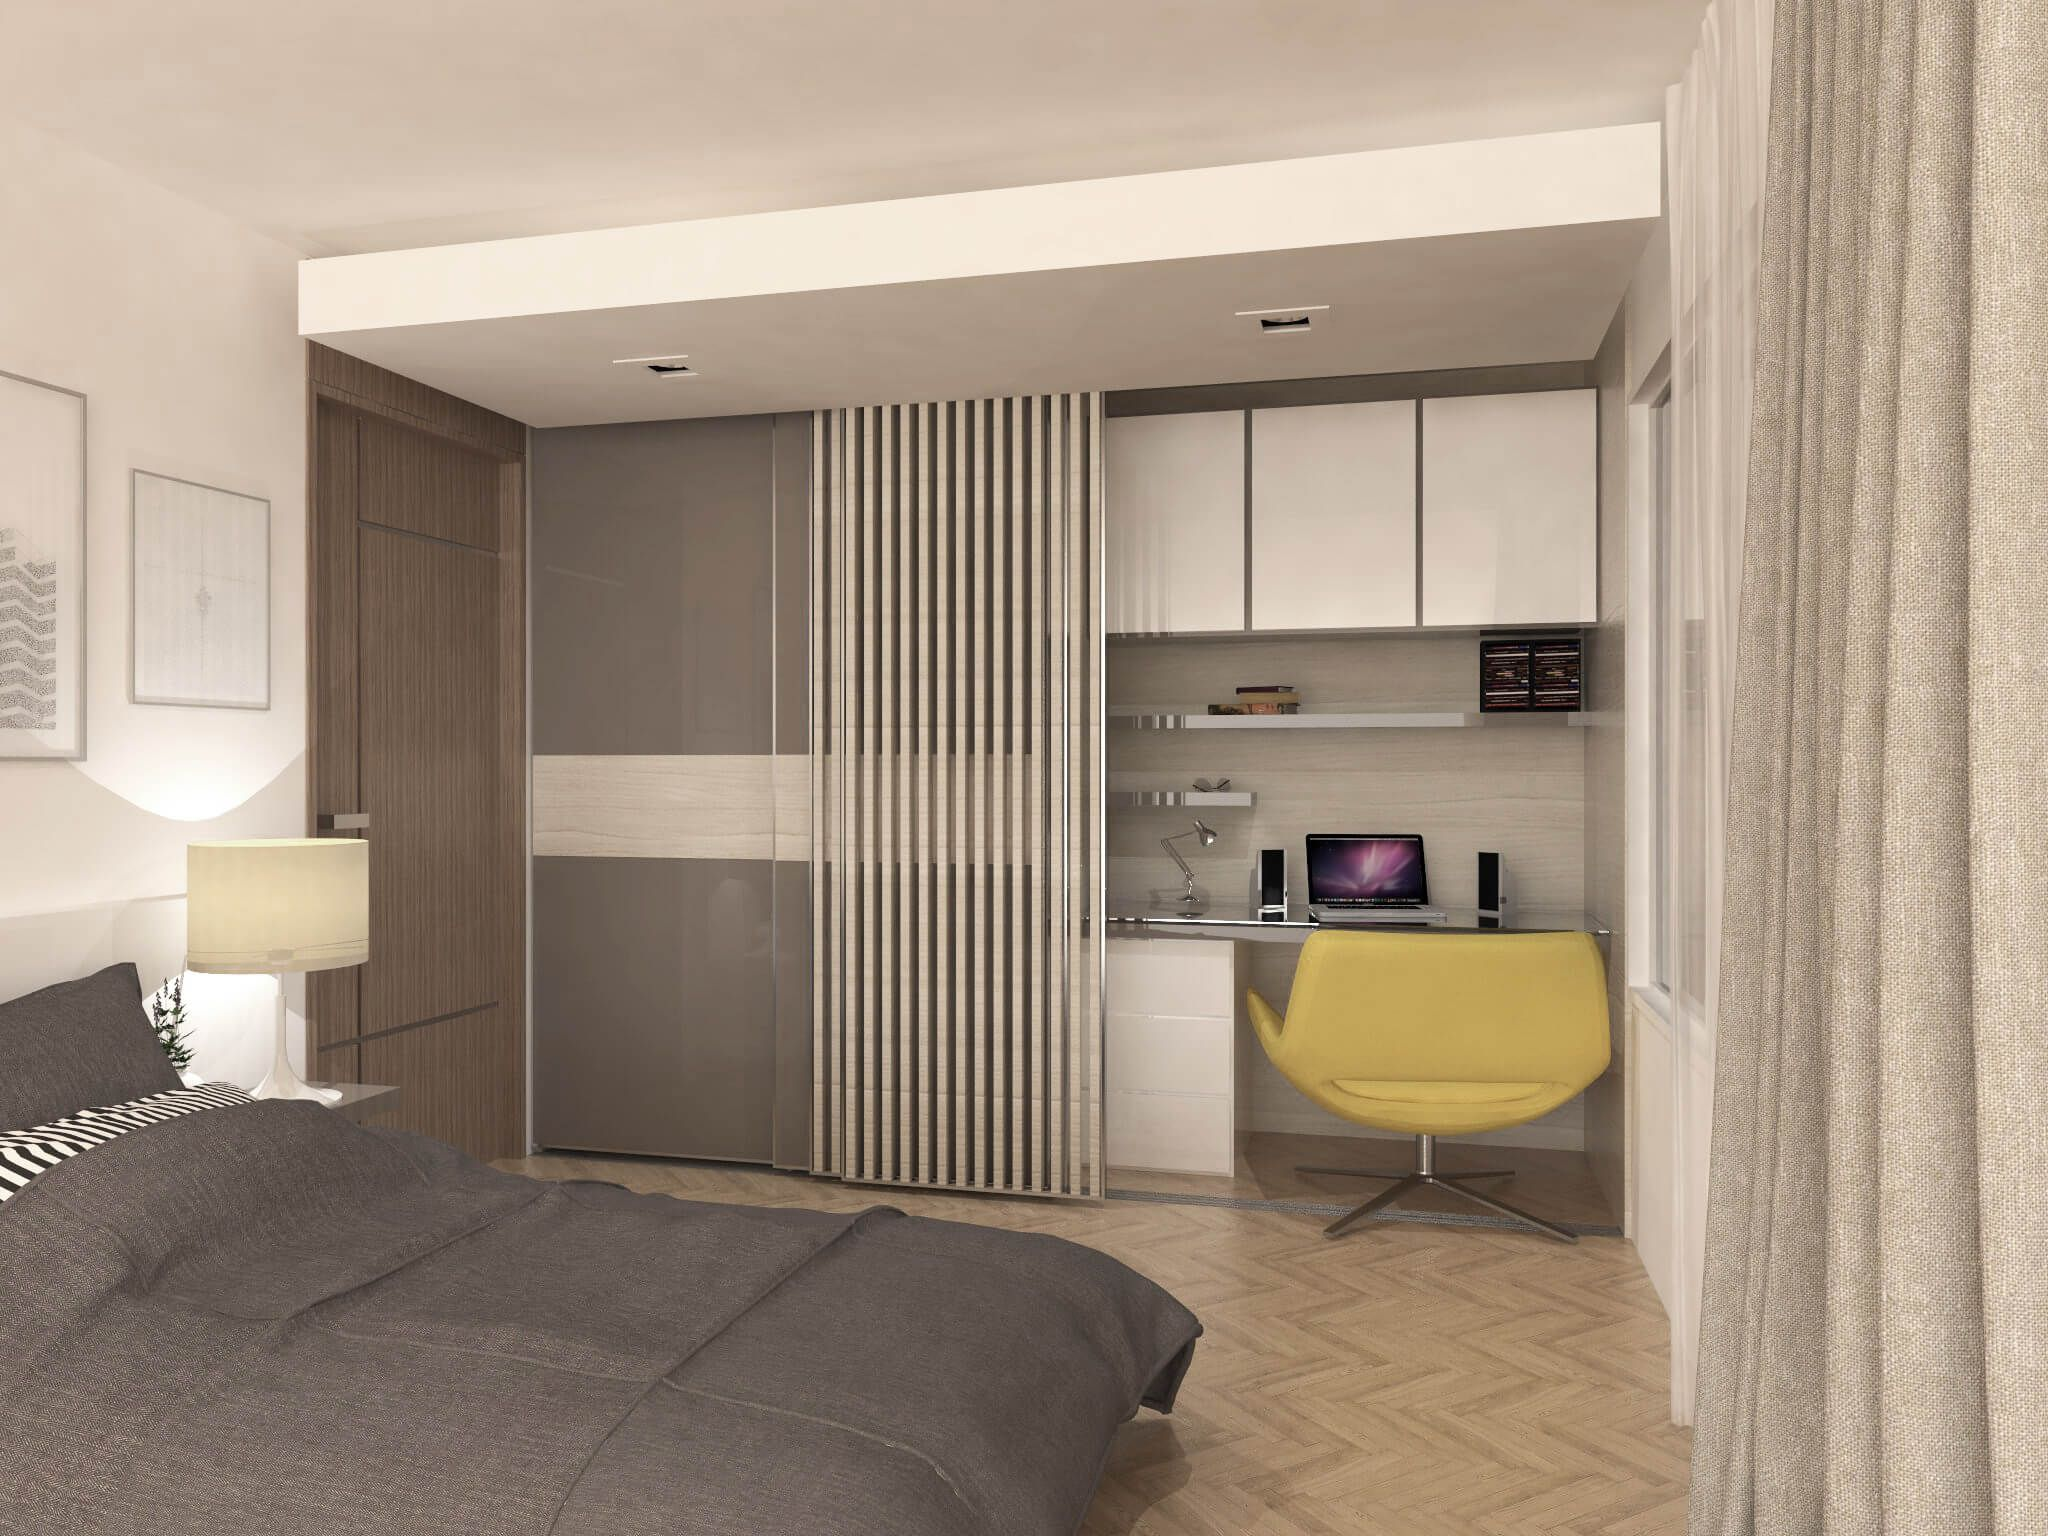 Awesome Before And After Bedroom Renovation Ideas Kukun Interior Design Bedroom Small Bedroom Renovation Interior Design Bedroom